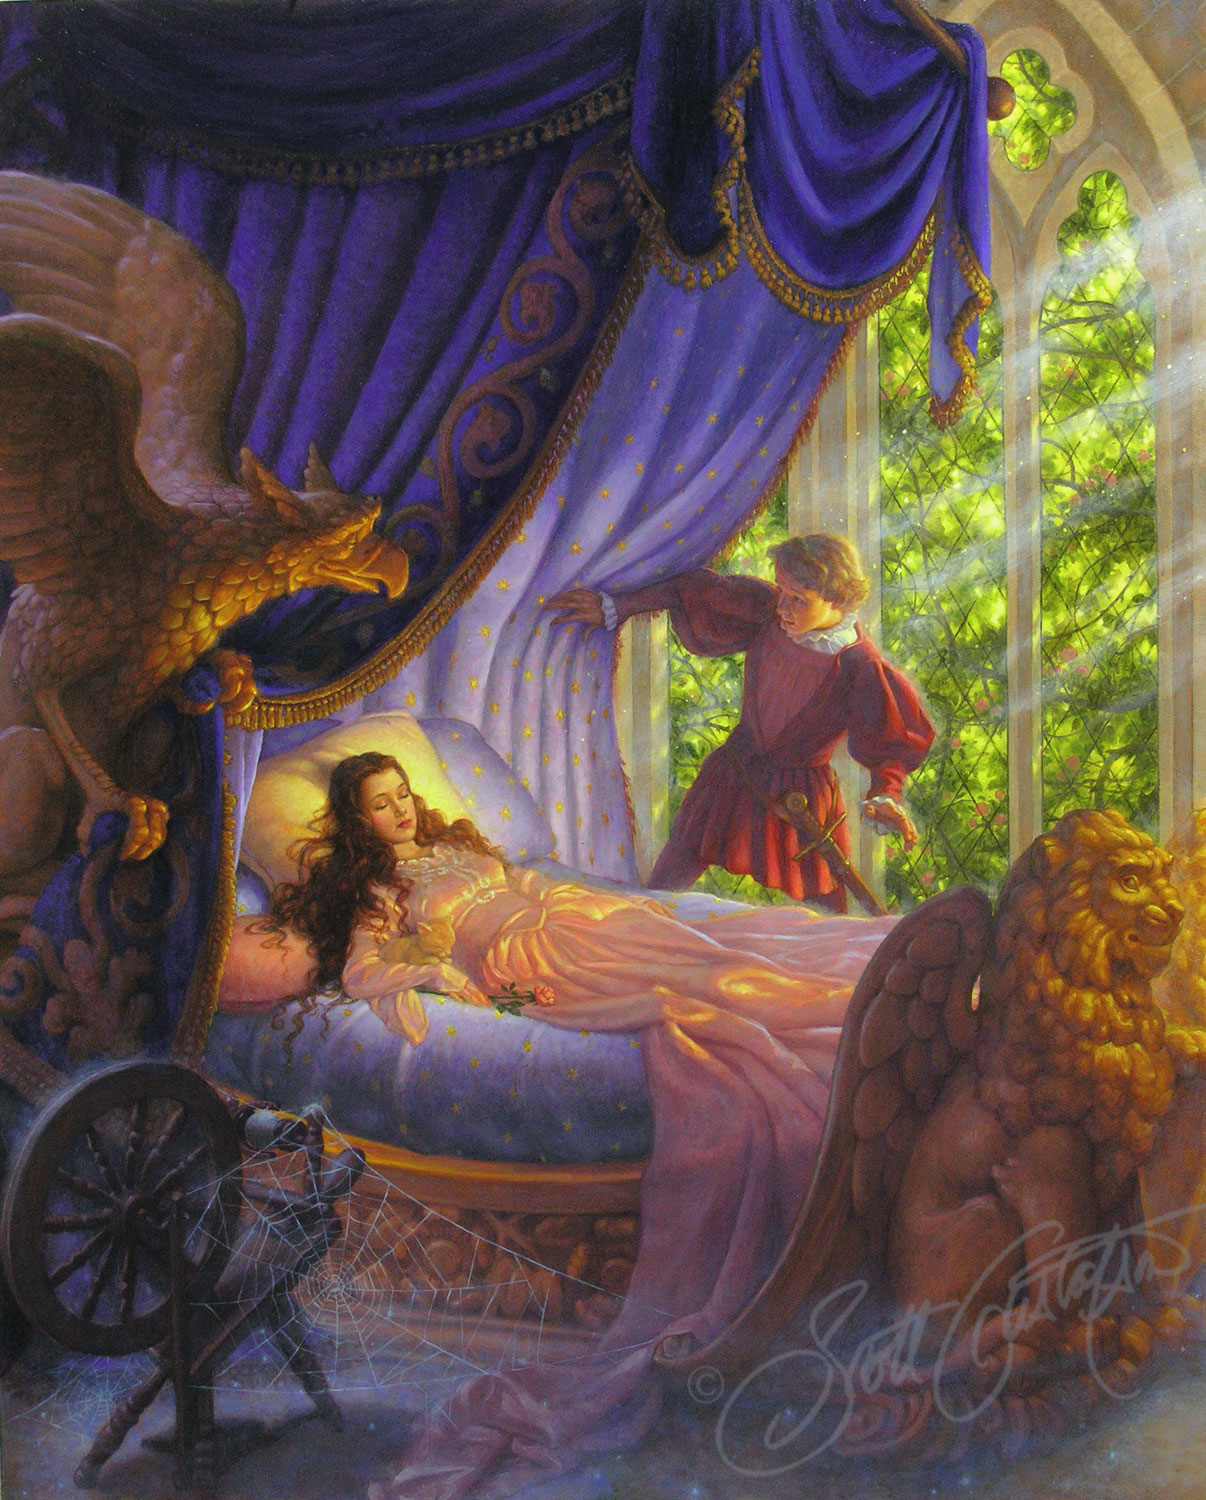 Copy of Sleeping Beauty